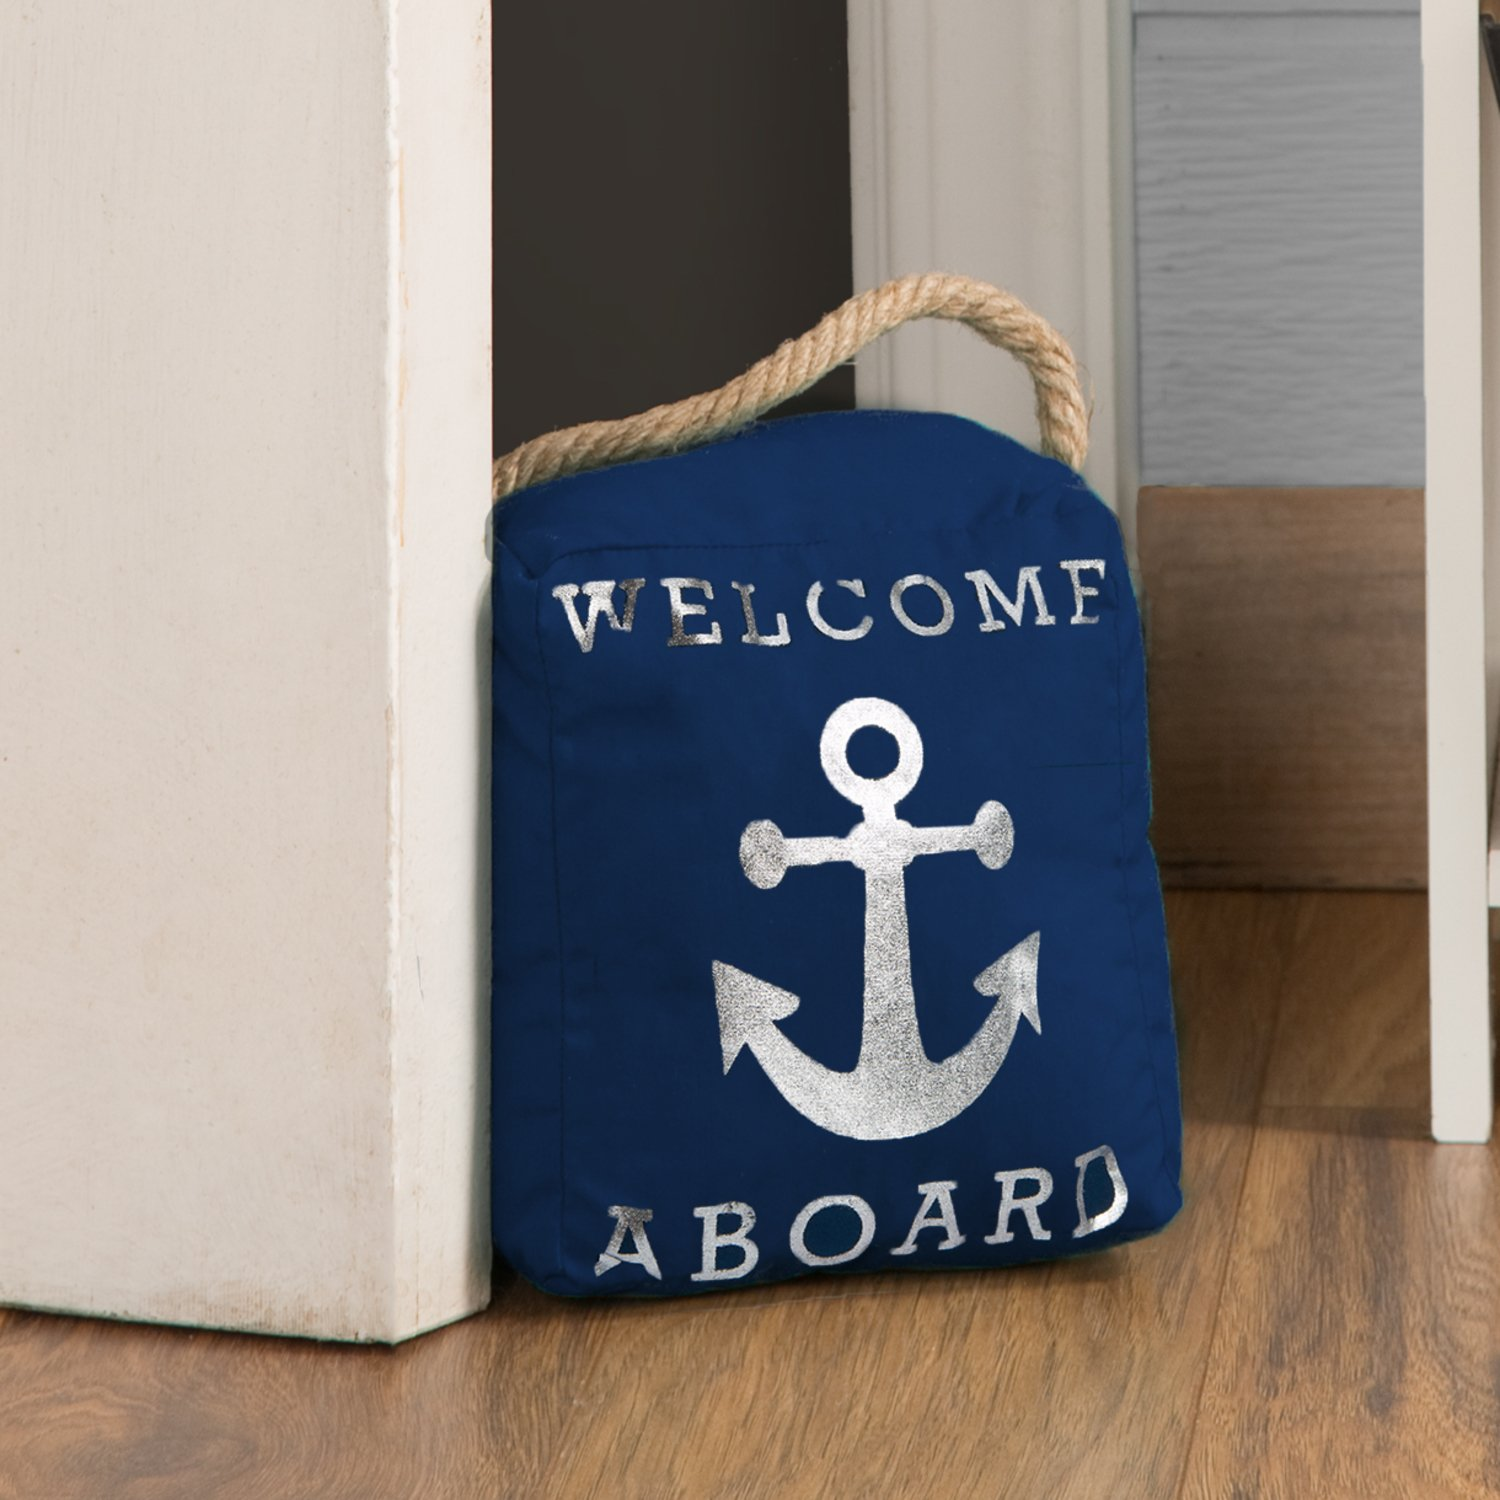 Pavilion Gift Company Open Door Decor Welcome Aboard Anchor Beach Navy /& Silver Door Stopper with Handle